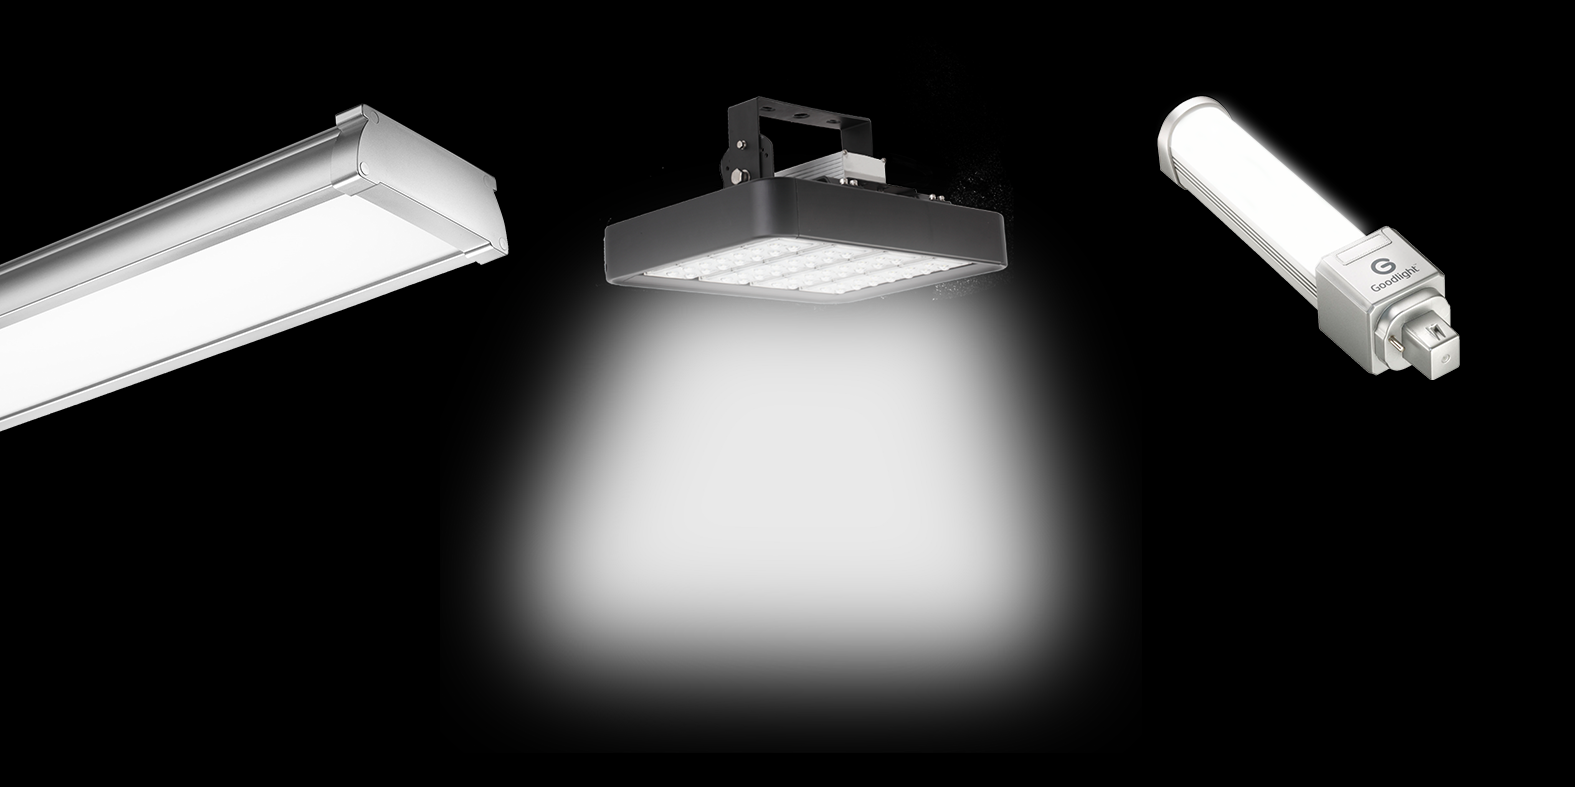 No more flickering lights with our Flicker-Free LED Lighting